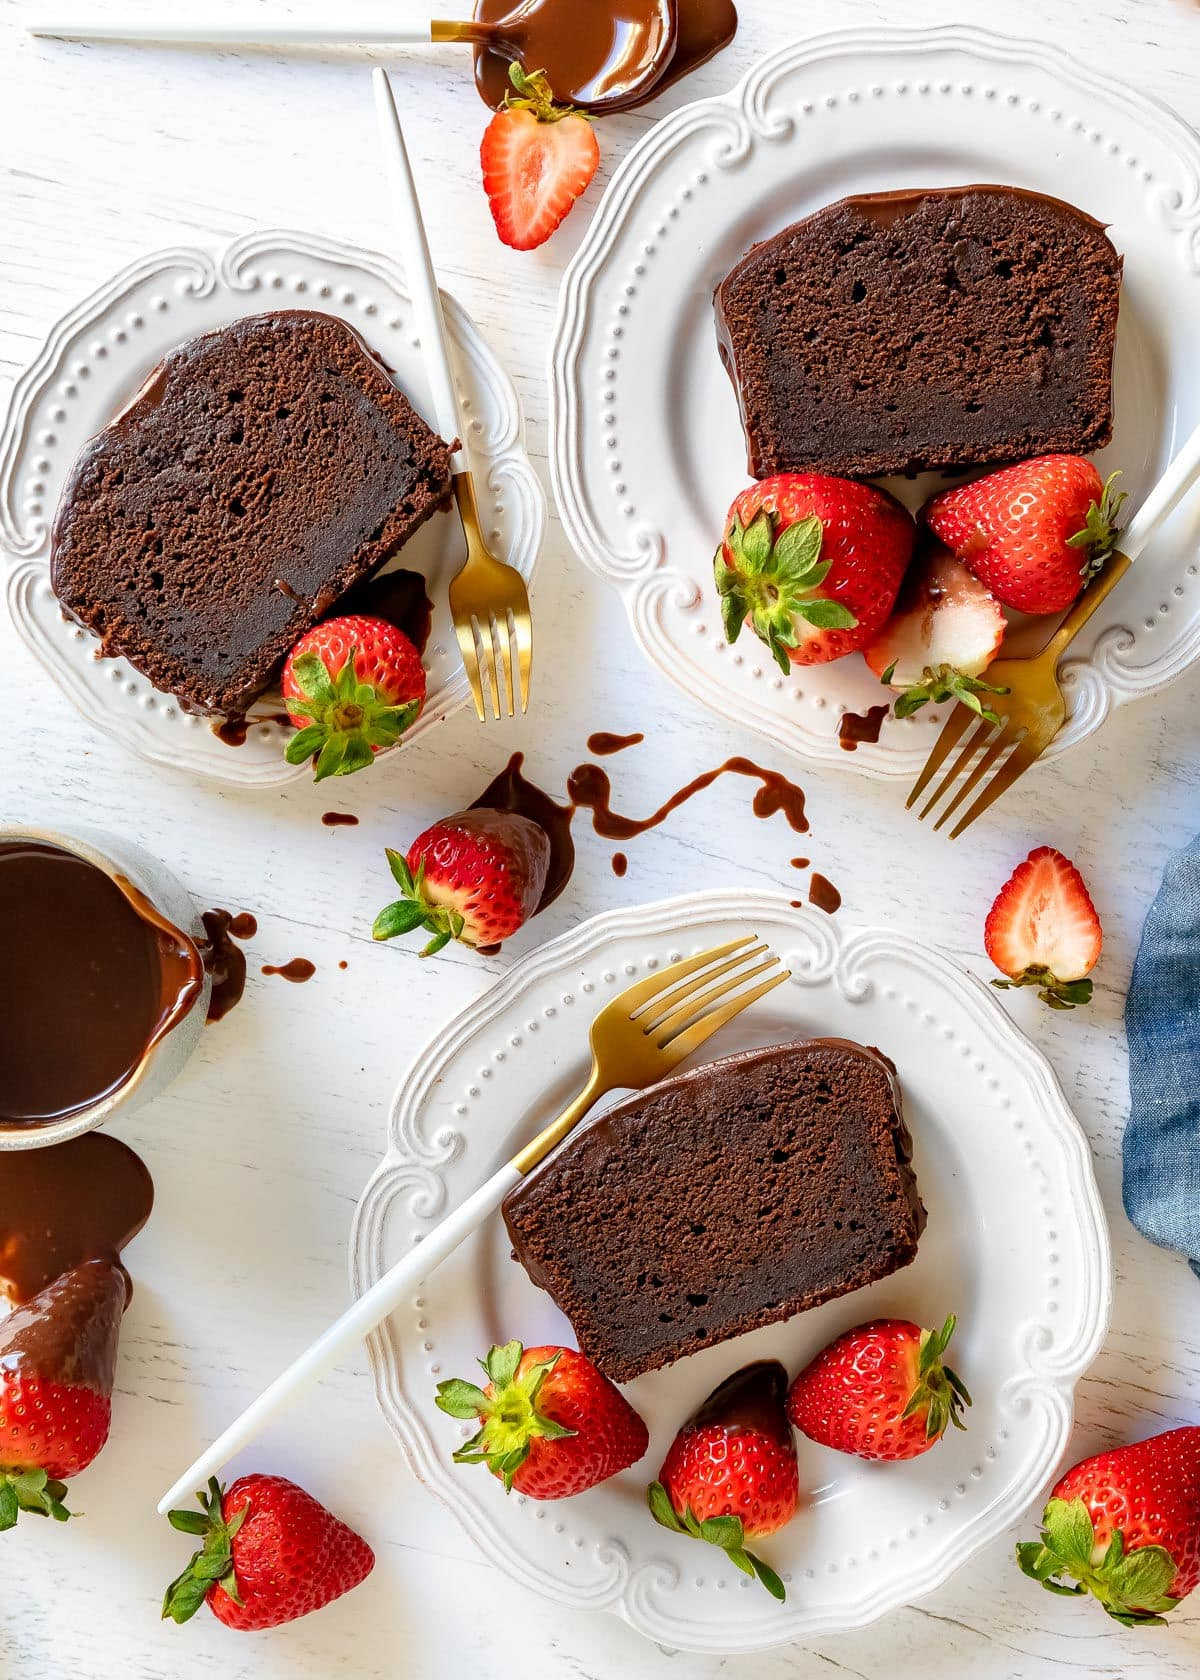 top down view of three slices of pound cake on white plates with strawberries scattered about and white and gold forks on plates